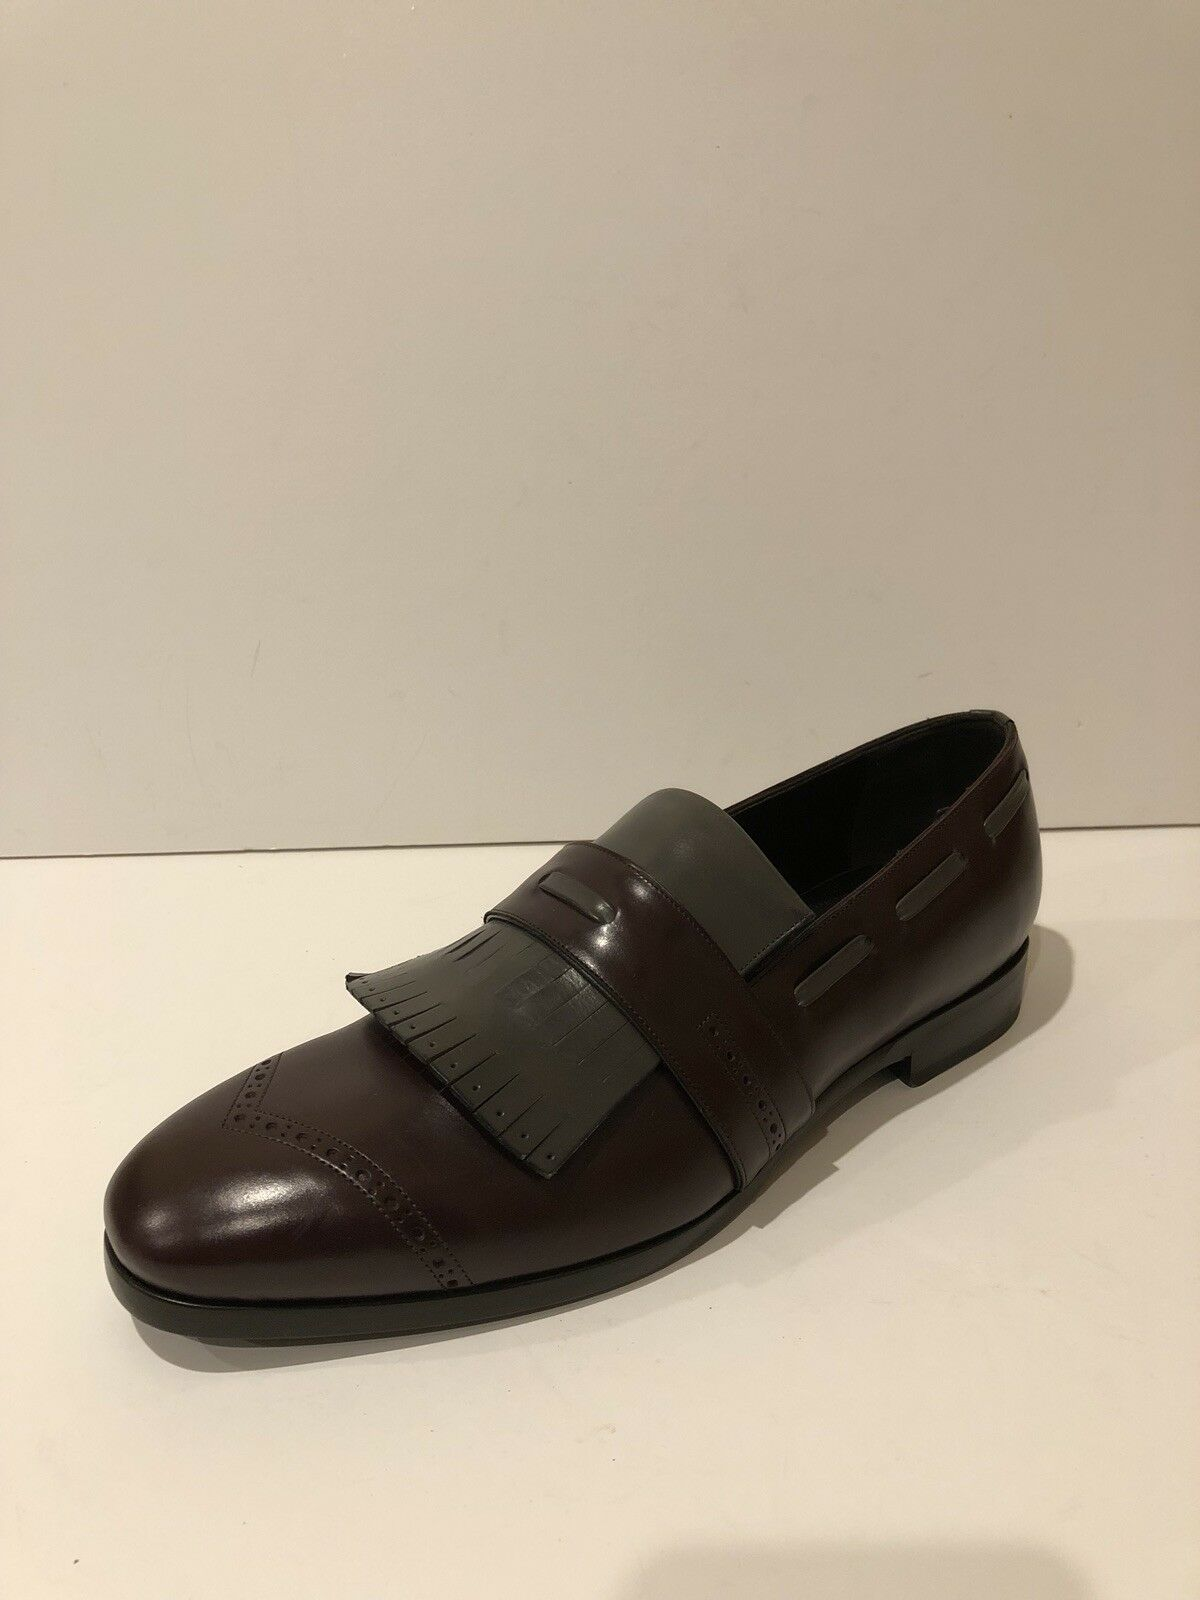 New Jimmy Choo Fringe Leather Leather Leather Loafer Slip On Dress shoes (Size  43IT 10US) 3aad45